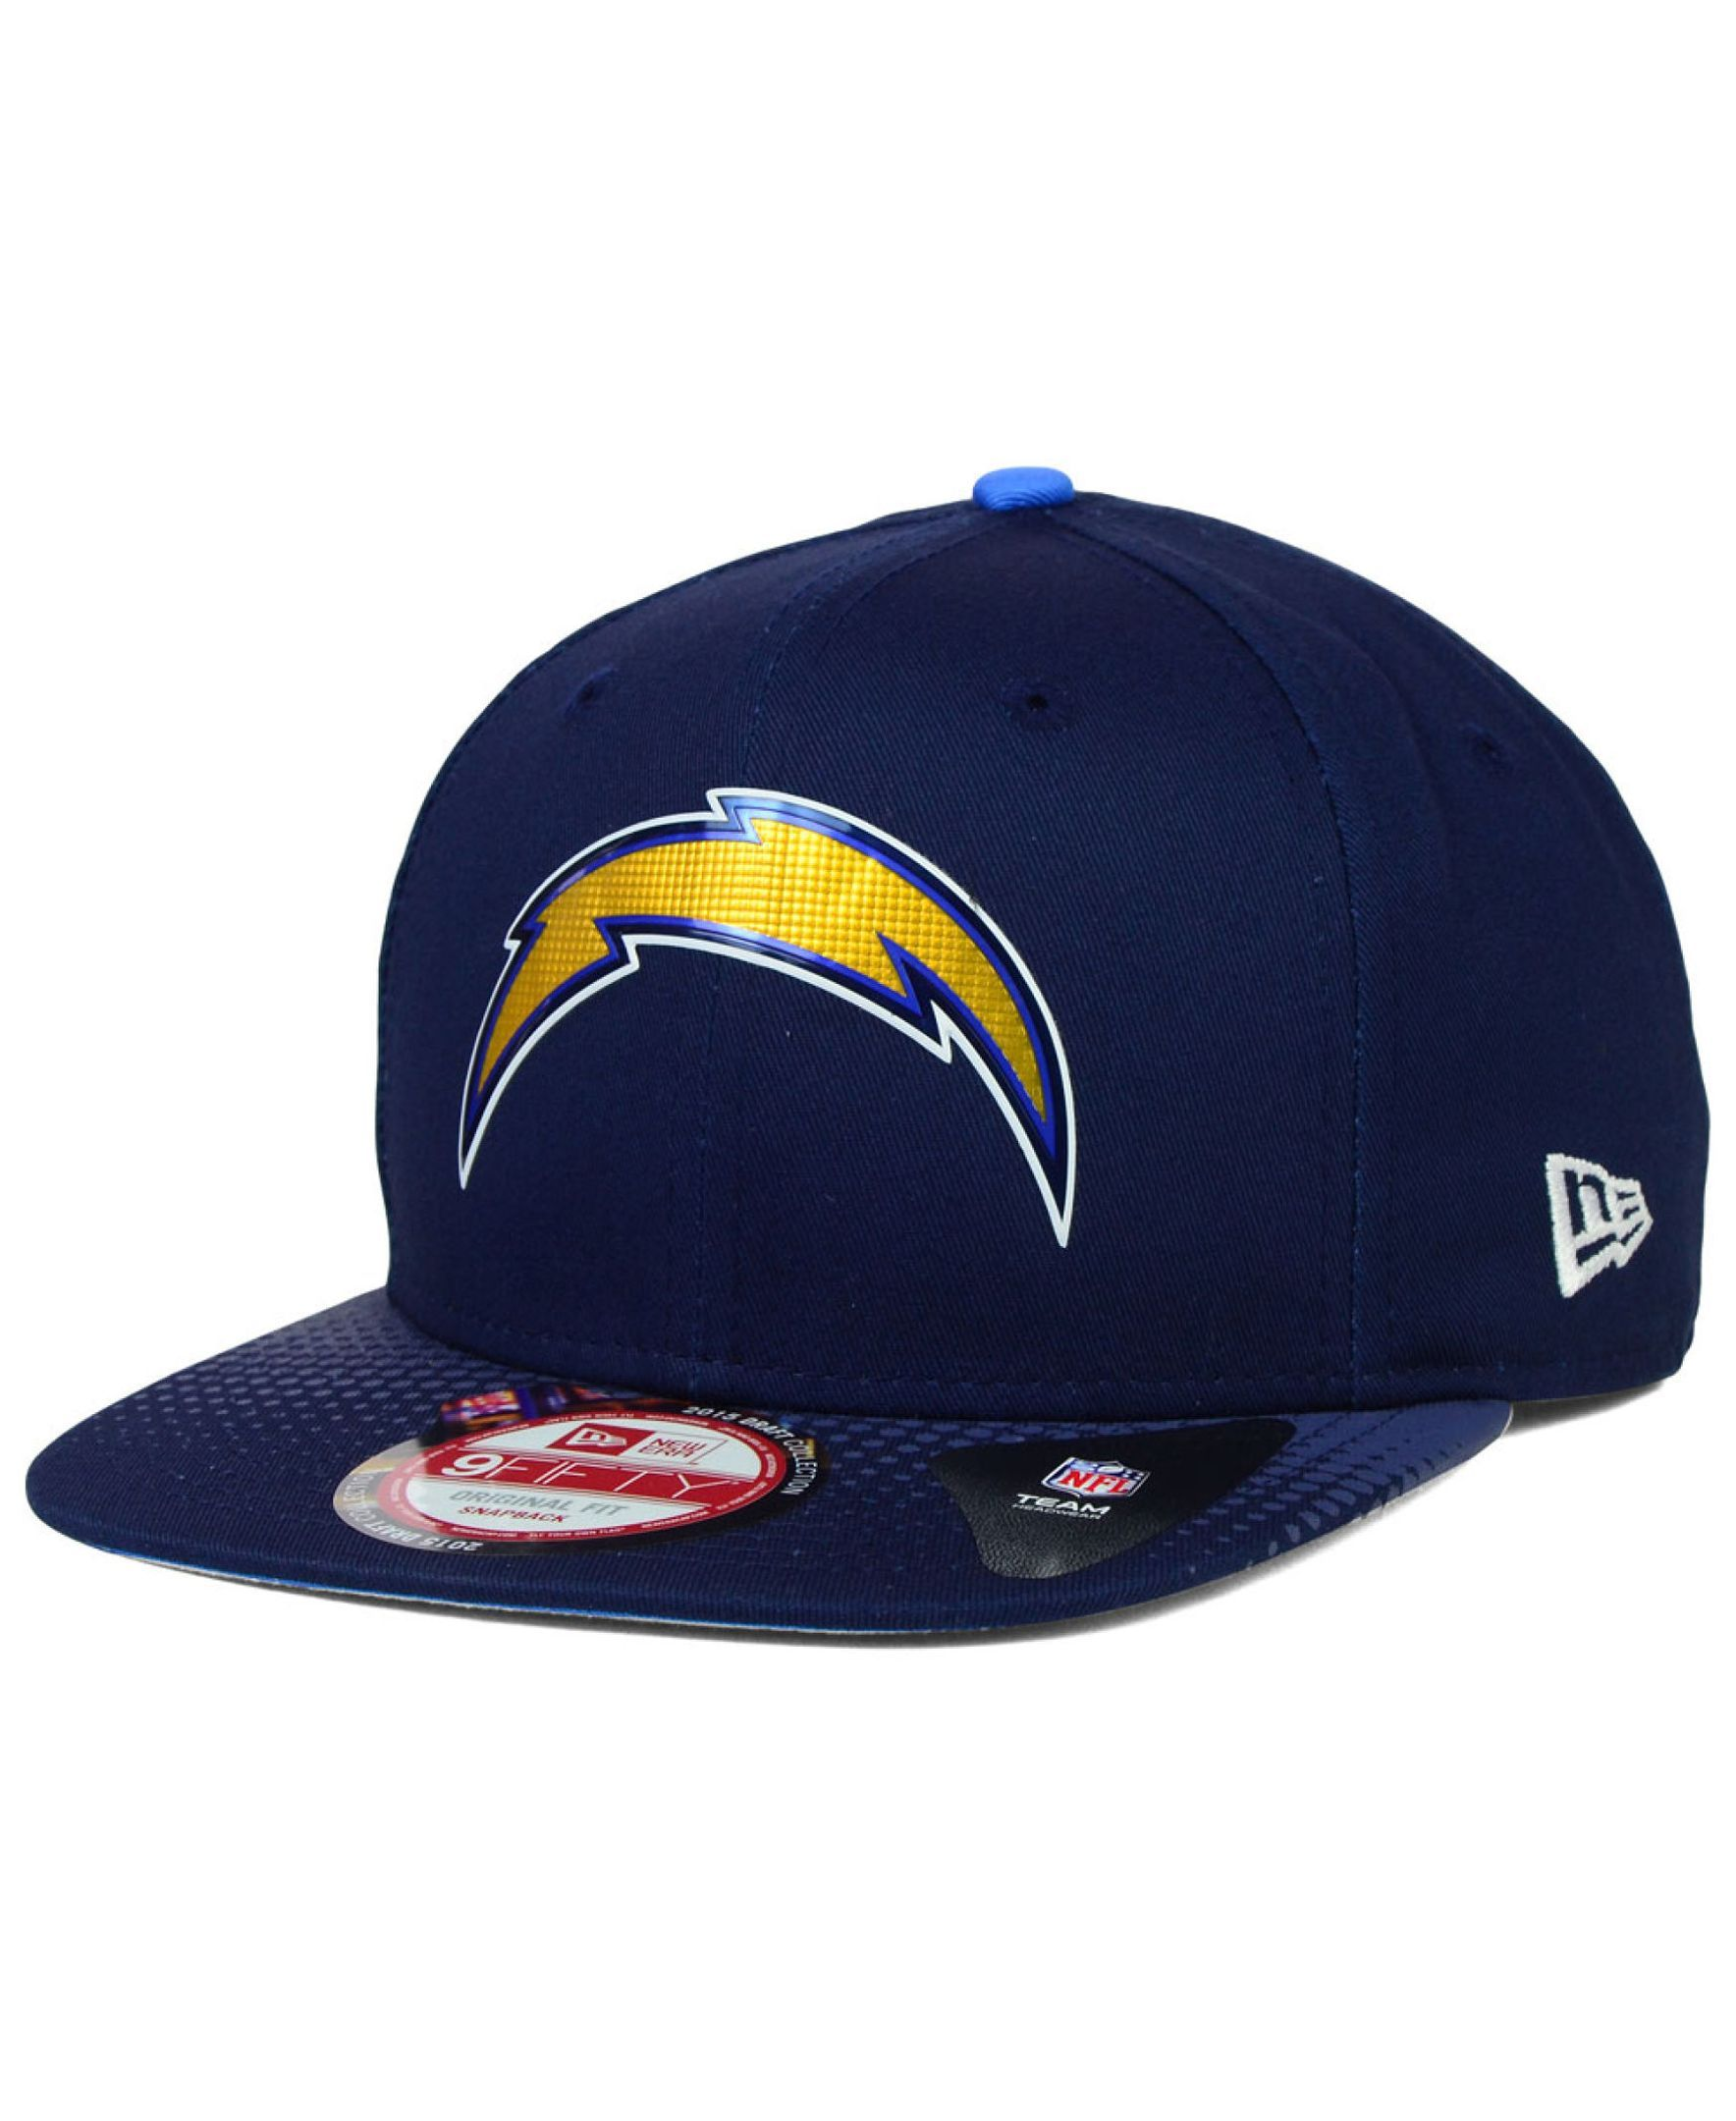 New Era San Diego Chargers 2015 Nfl Draft 9fifty Snapback Cap Con Imagenes Gorras